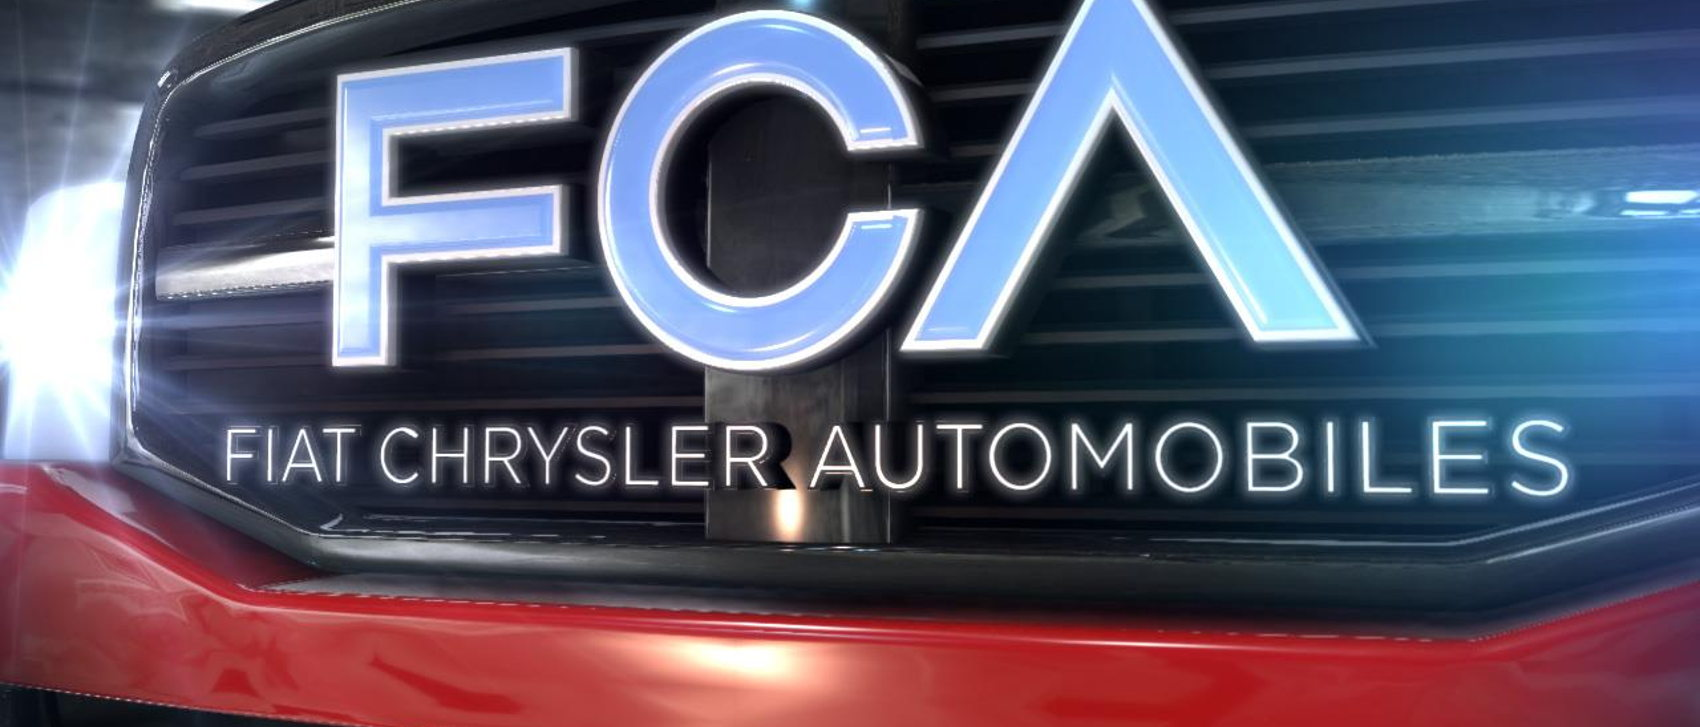 3 Executive Takeaways From Fiat Chrysler's Partnership With Amazon